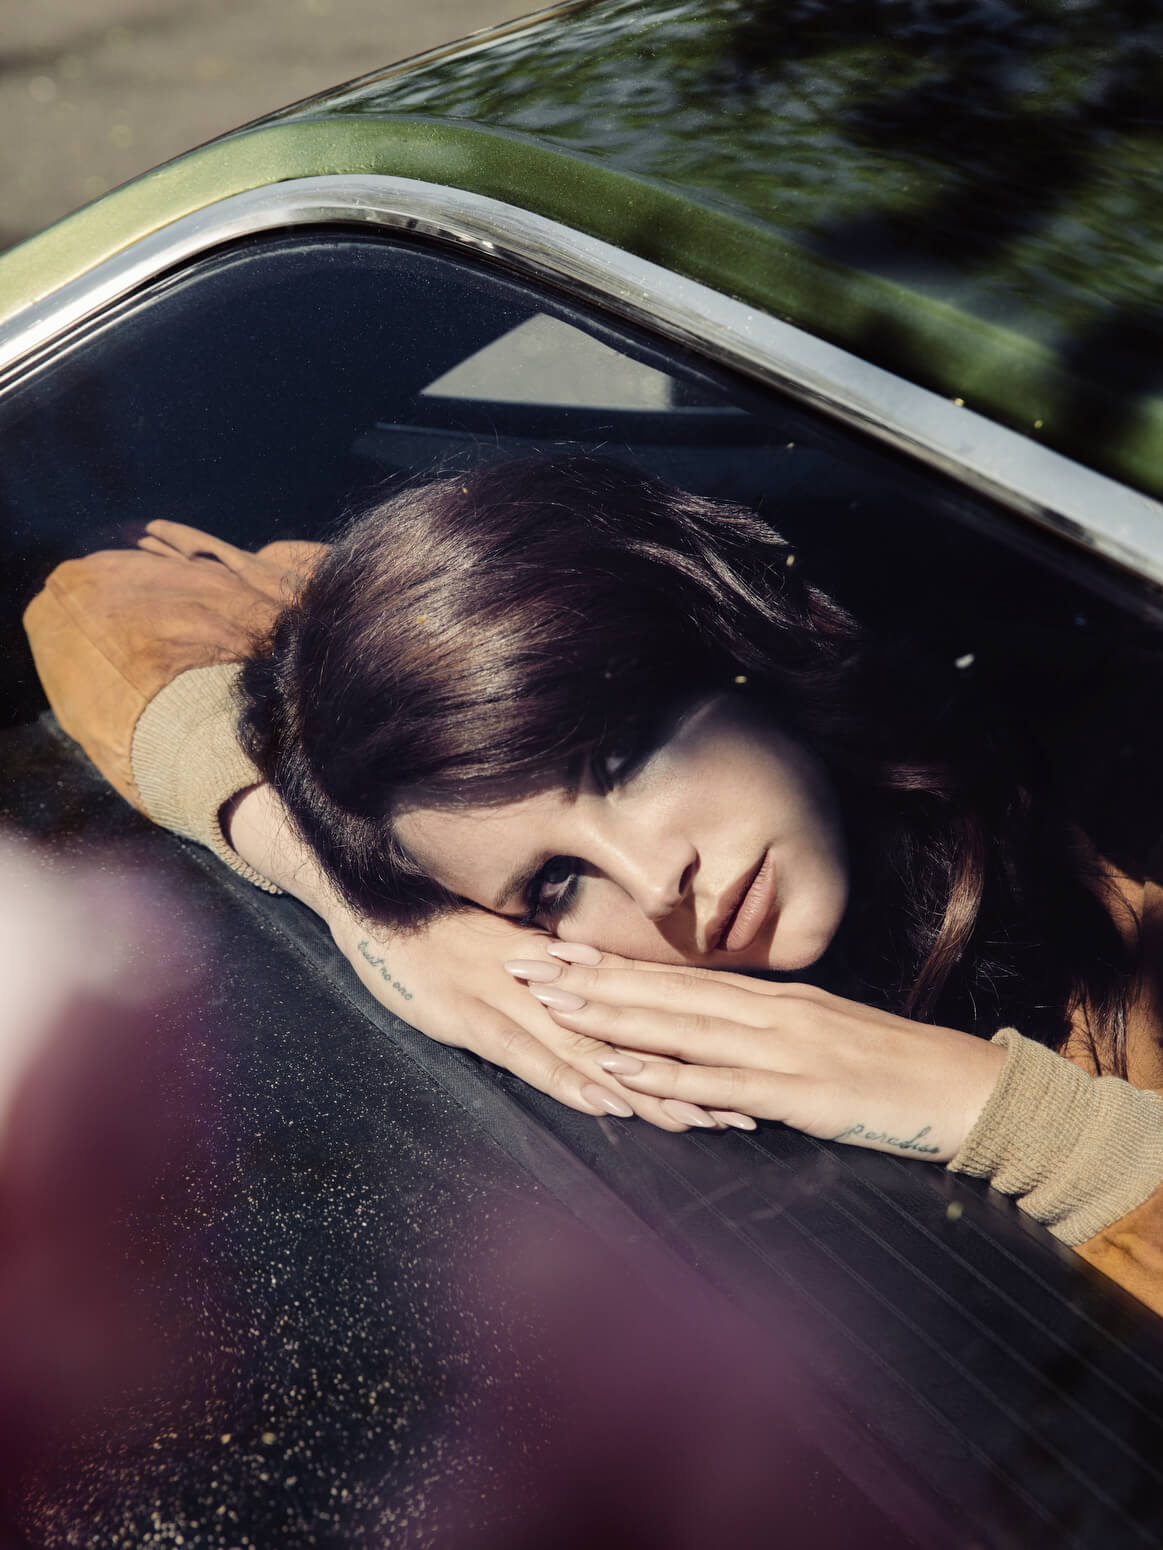 Lana Del Rey for  FADER,  photographed in Brooklyn, NY, 2014